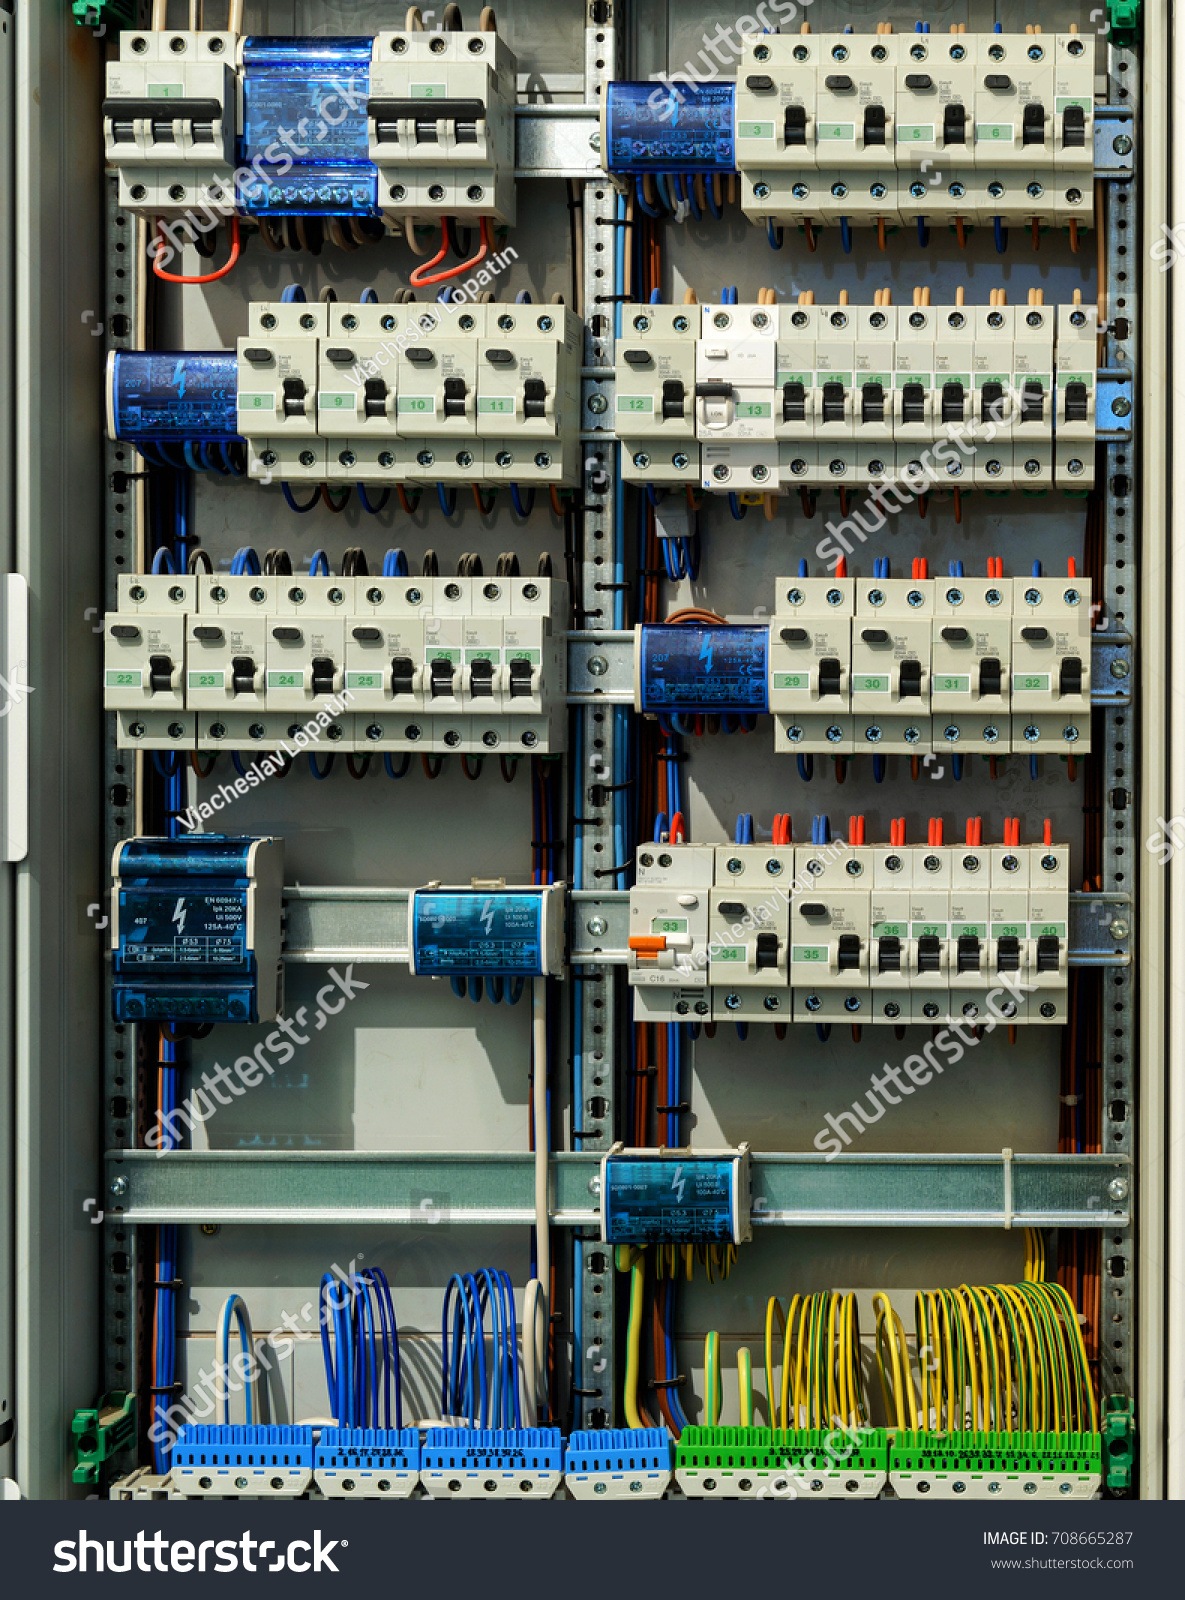 hight resolution of electrical switch box in a house large electric fusebox on a wall open switchboard